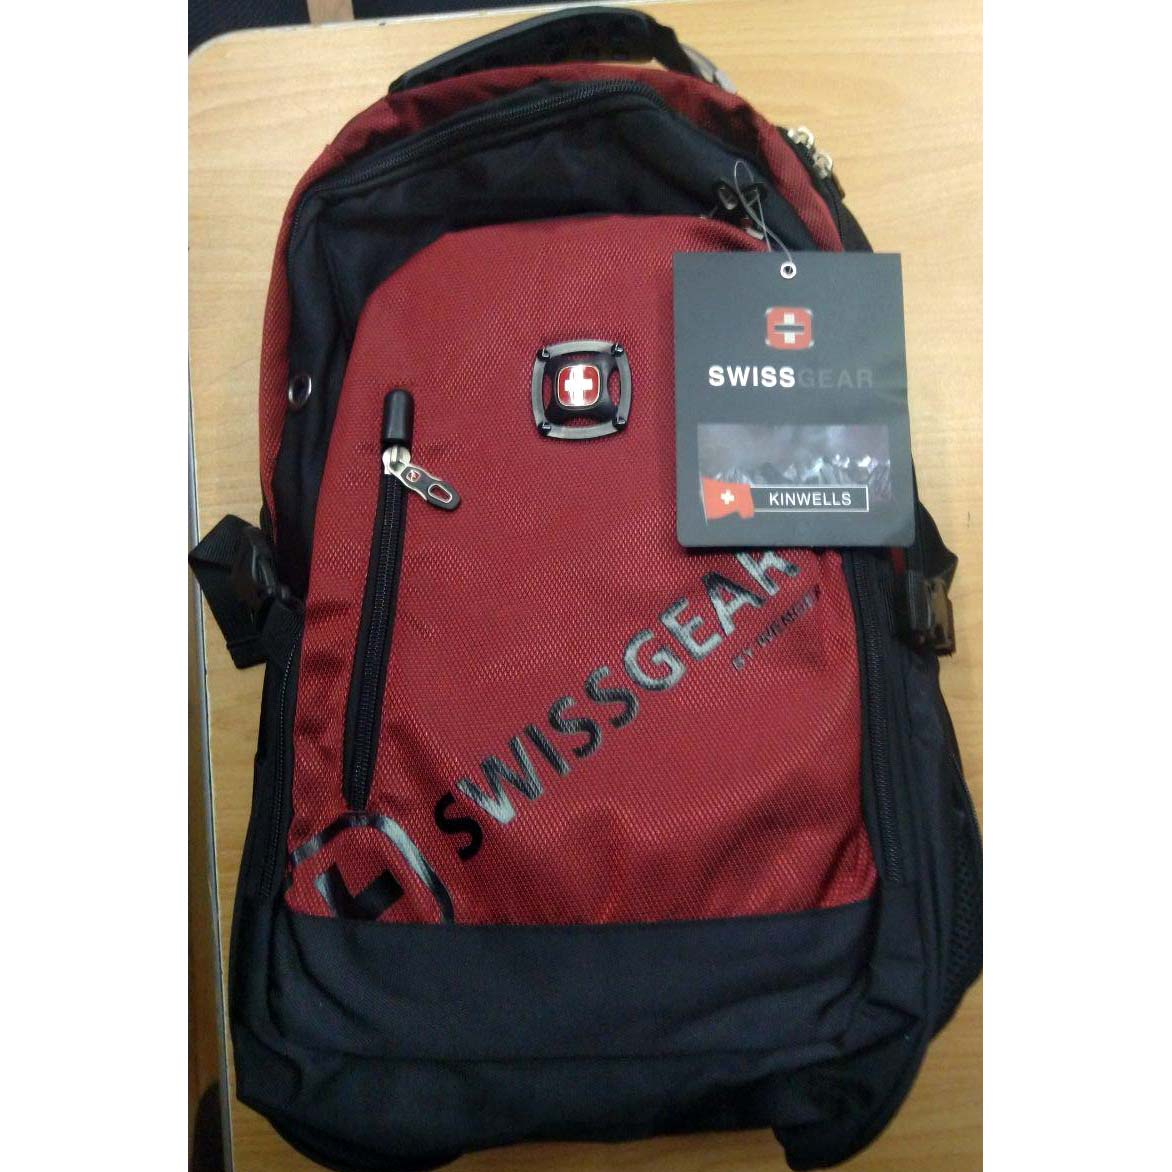 NOTEBOOK BAG SWISSCEAR BACK COLOR 15.6 صوت+USB ظهر+تطويلة ,Laptop Bag